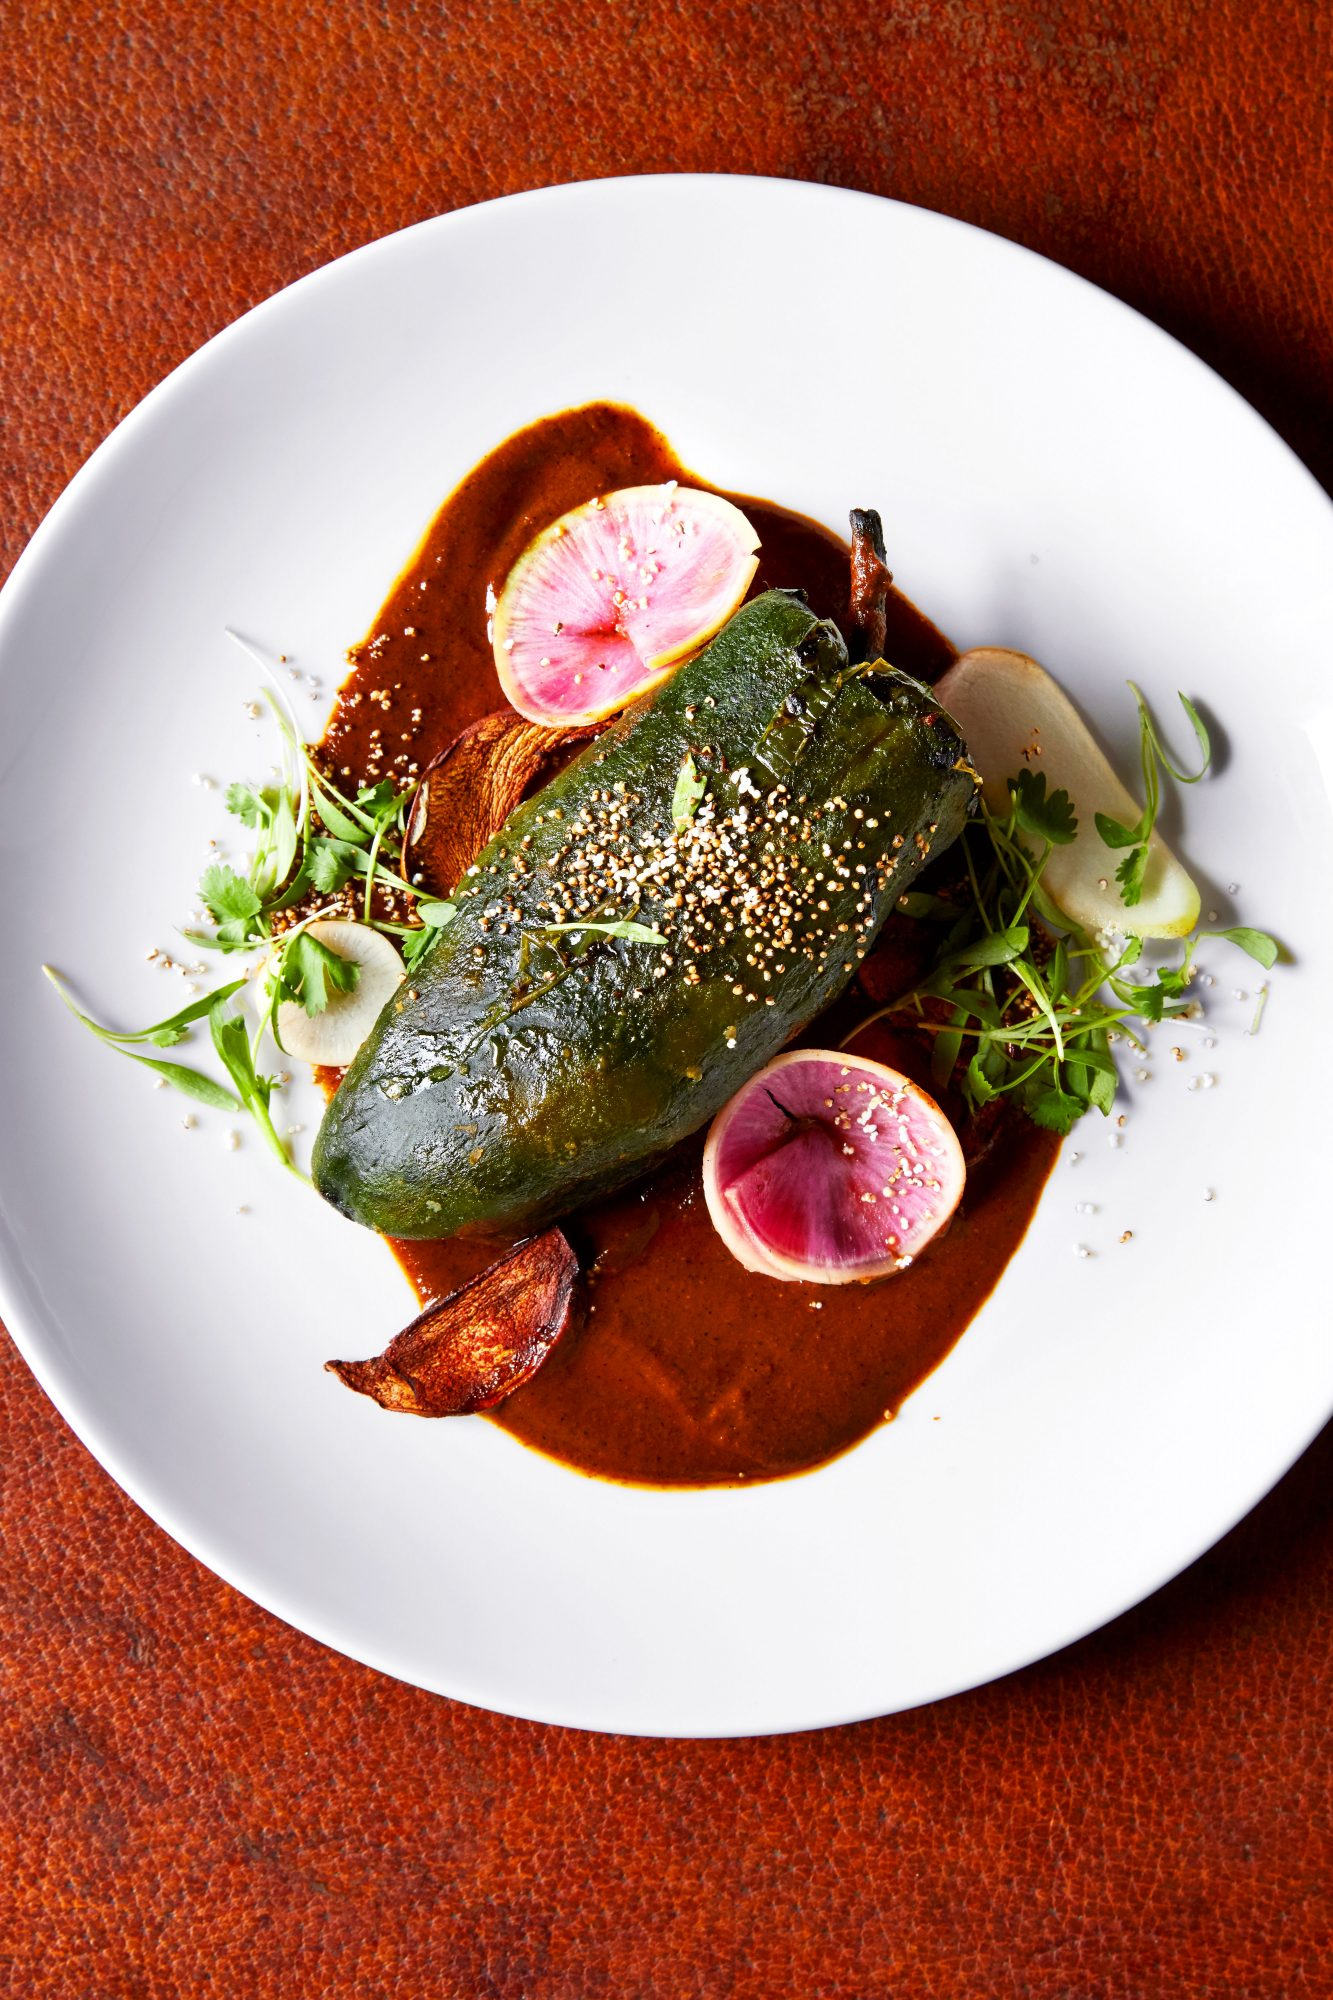 Enjoy a Mexican Style Chile Relleno at 12 Gage Restaurant in Marathon, TX